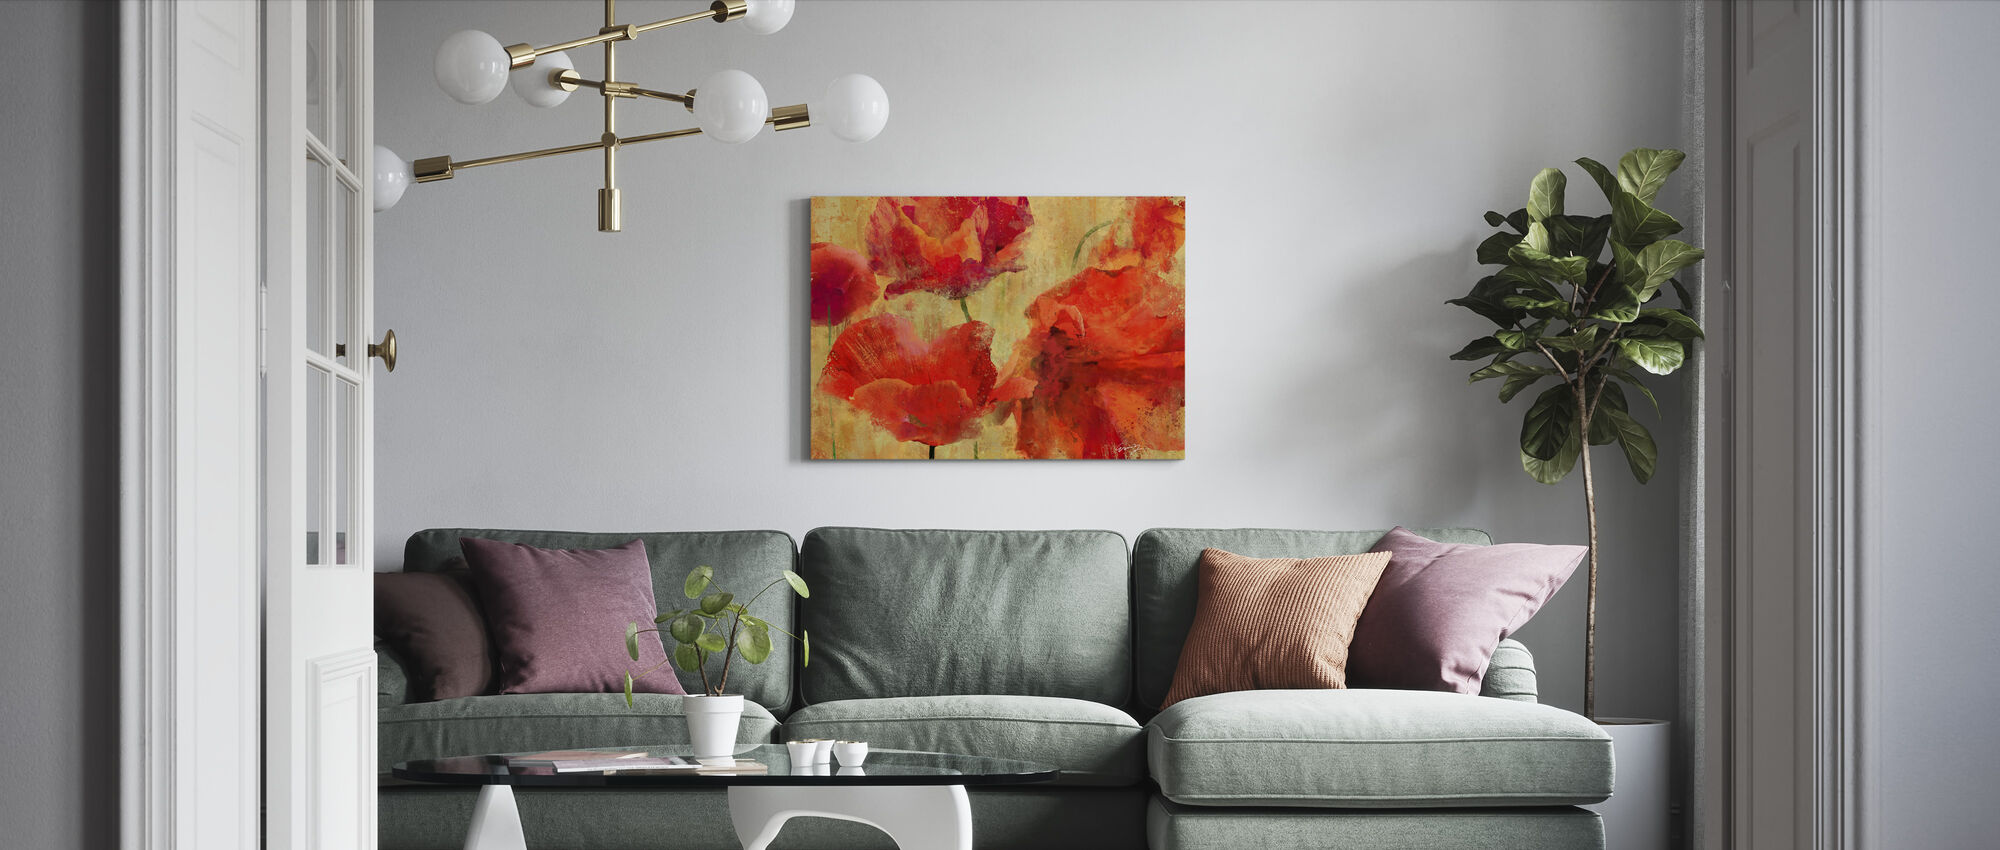 Expressive Flowers - Canvas print - Living Room